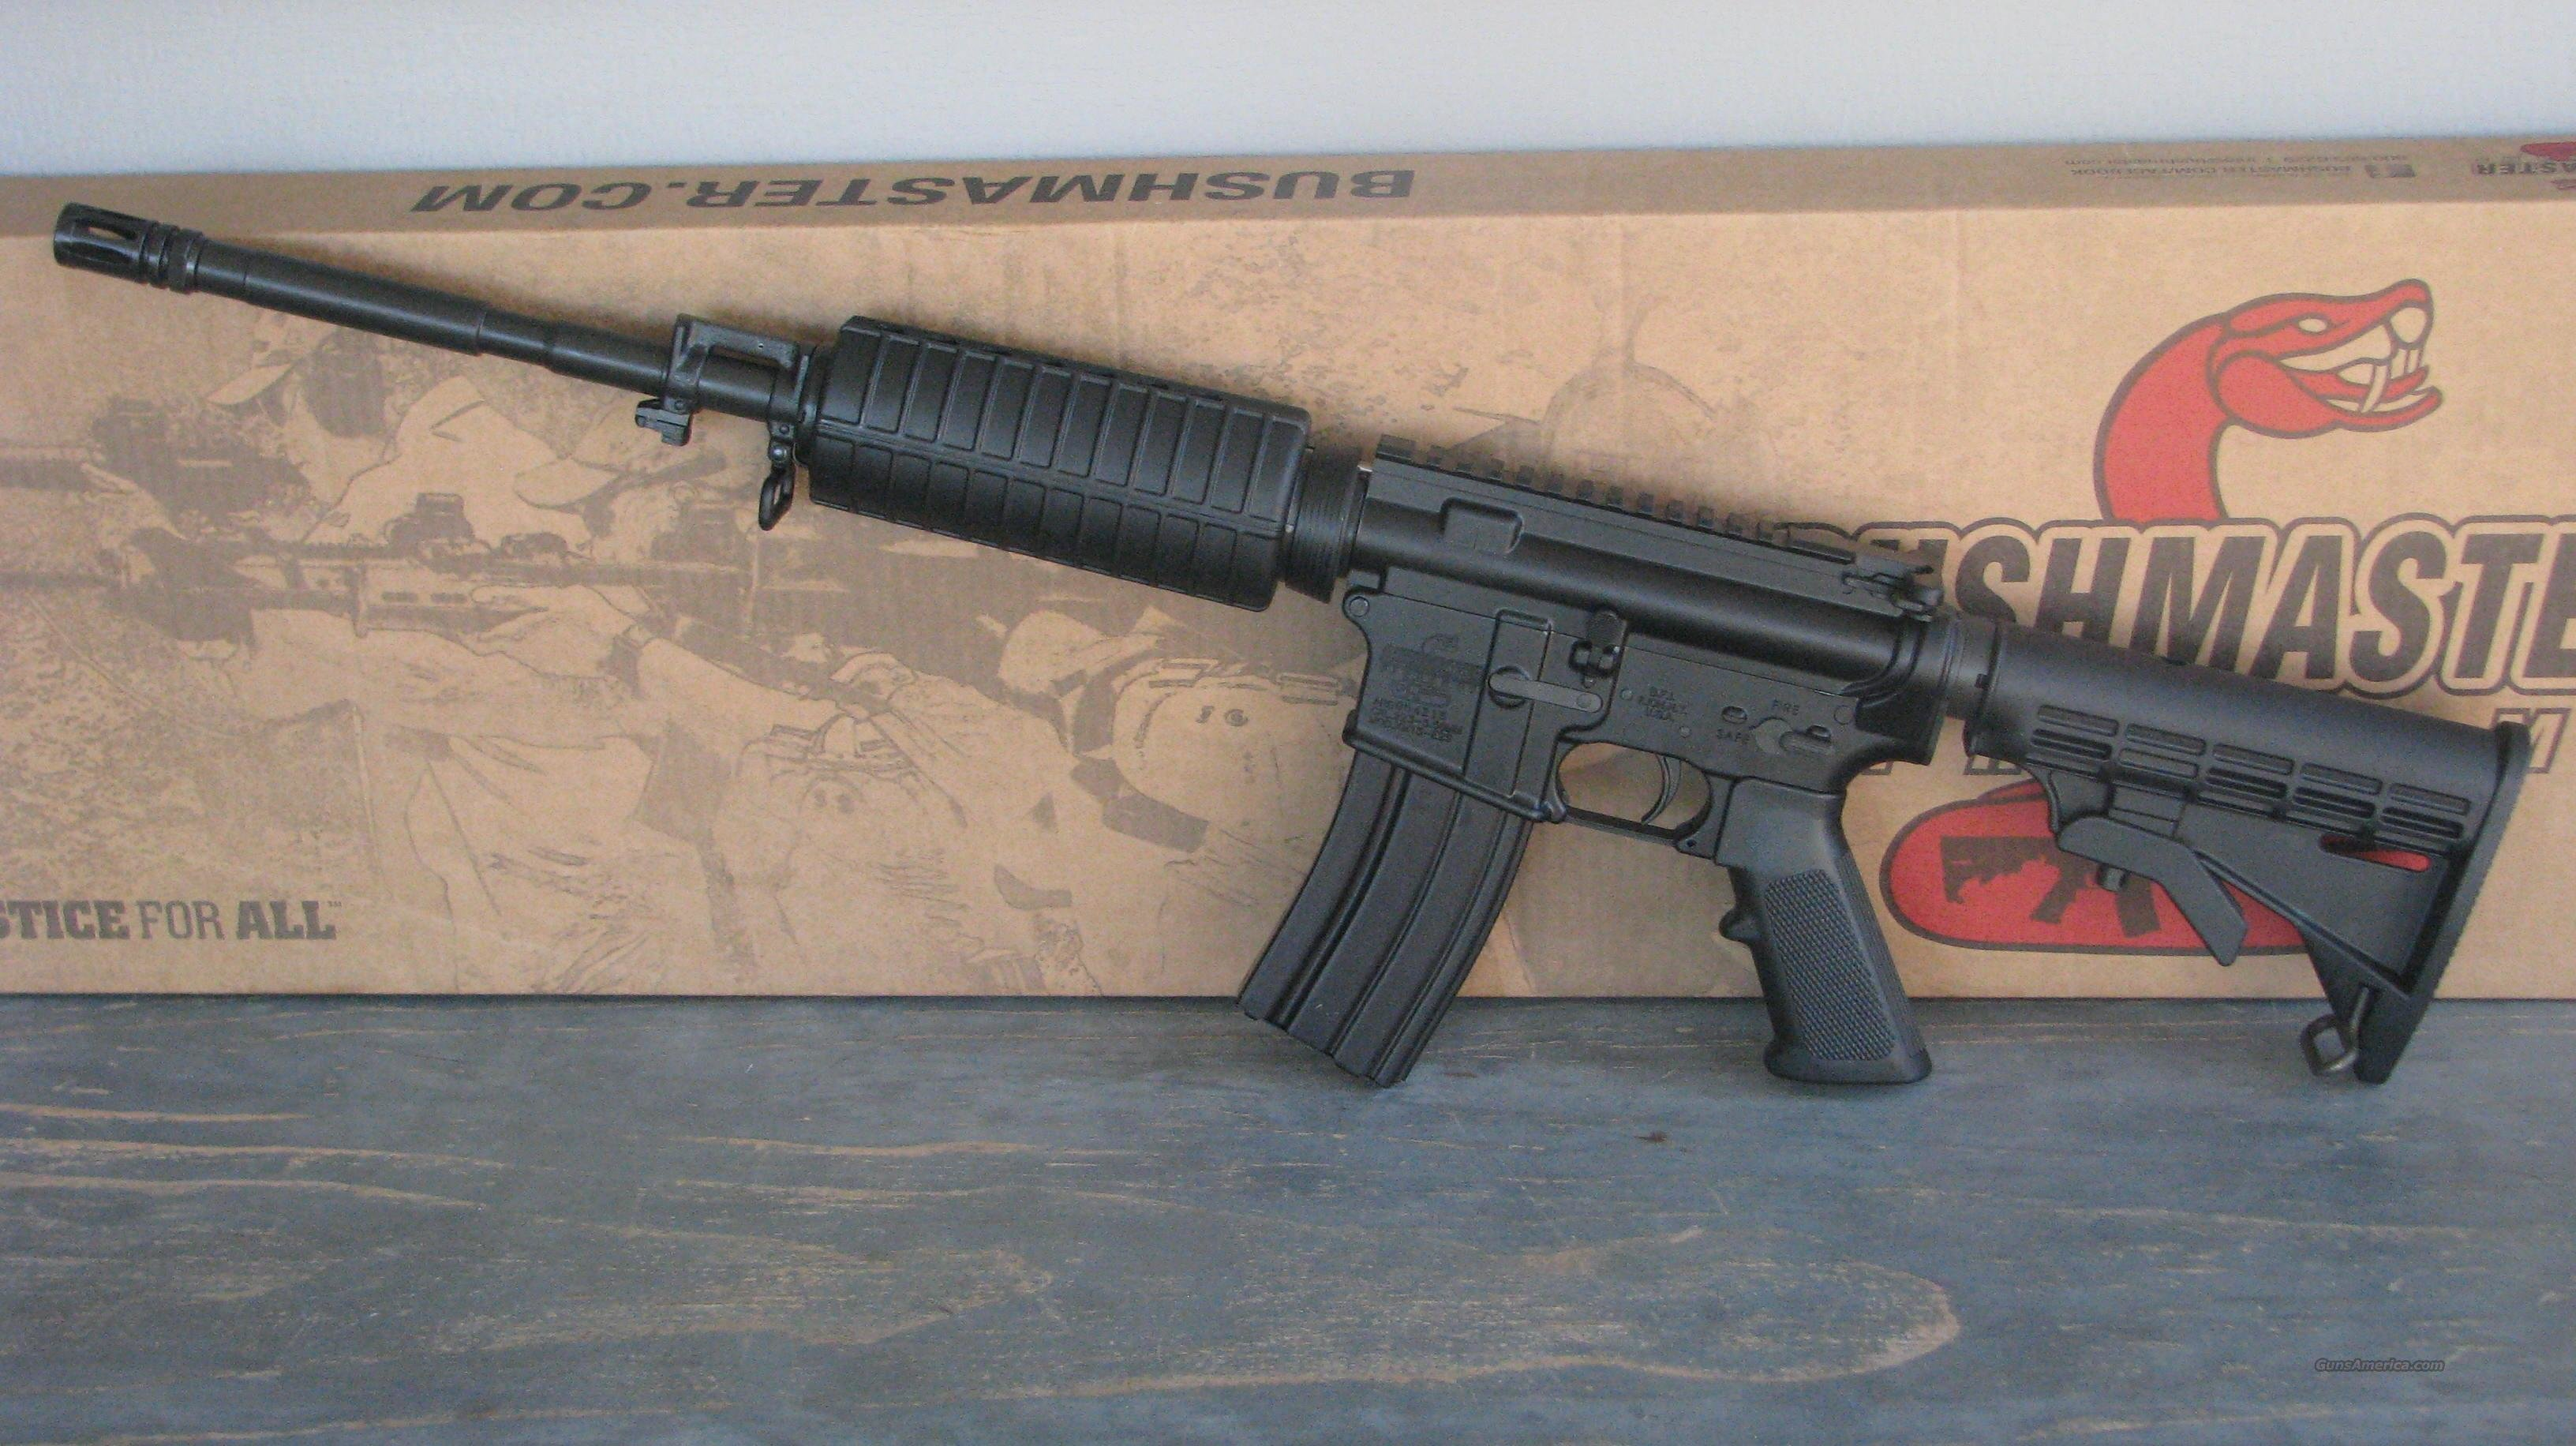 Bushmaster 223 M4 ORC 90391 AR-15 AR15 / EASY PAY $57 MONTHLY  Guns > Rifles > Bushmaster Rifles > Complete Rifles